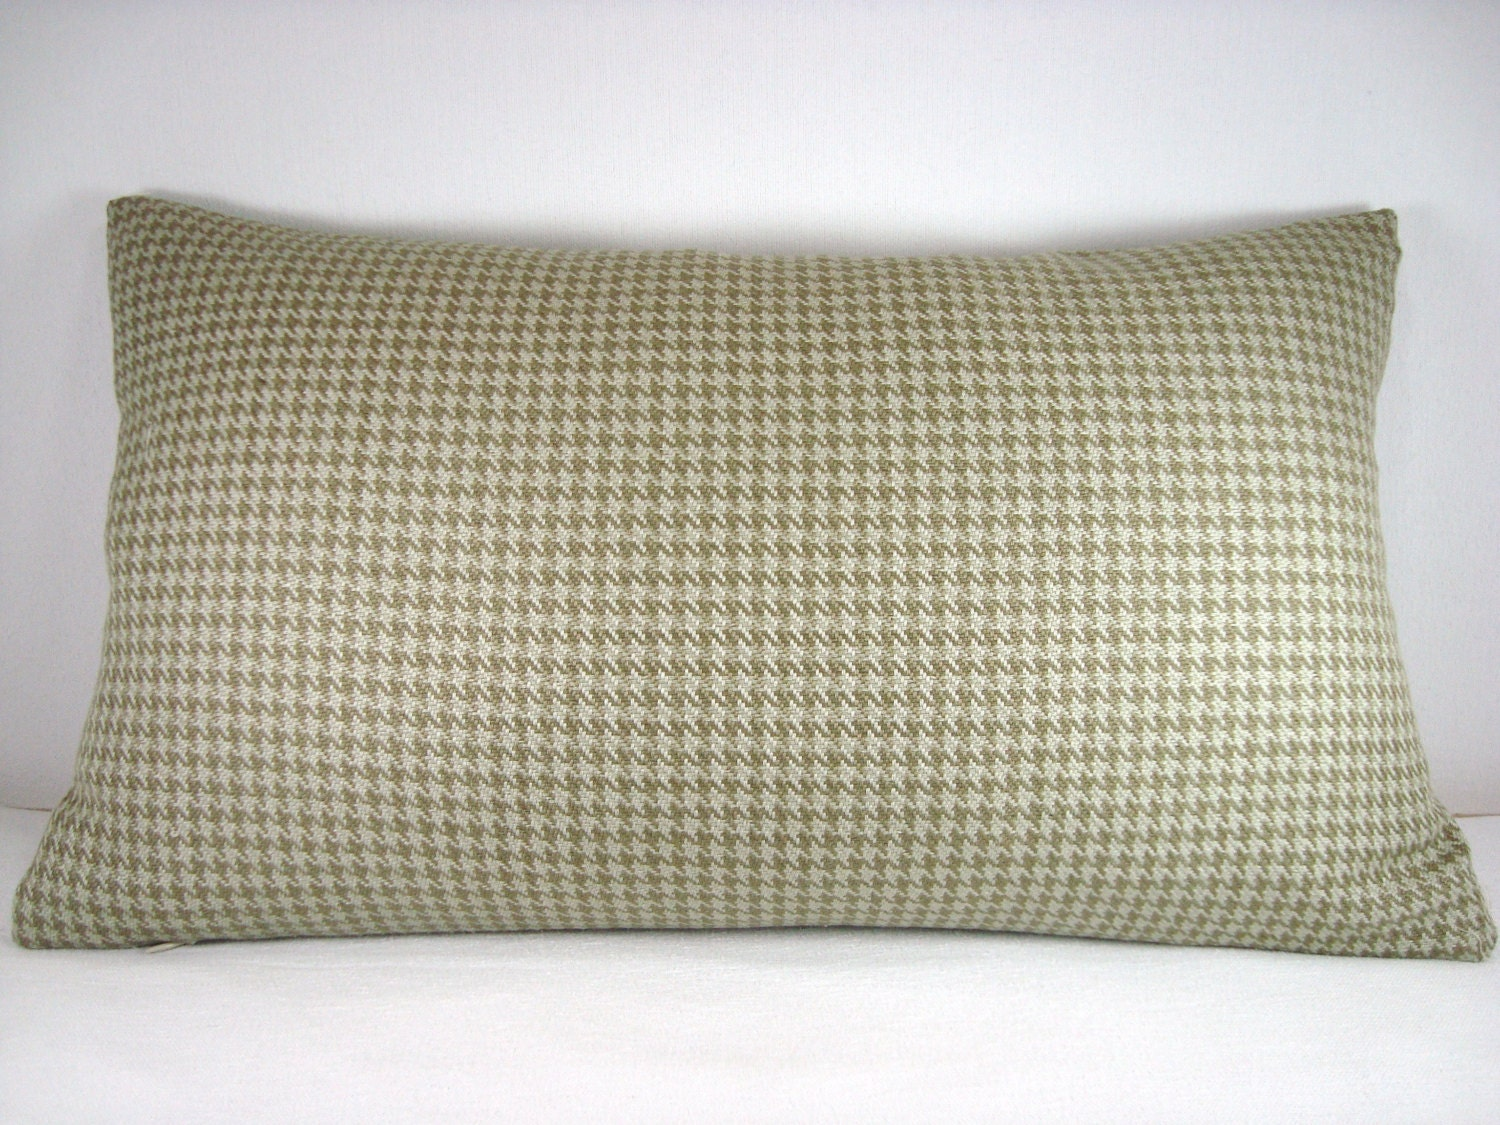 Modern Lumbar Pillows : 12X20 Decorative Houndstooth Modern Accent Lumbar Pillow/Fern